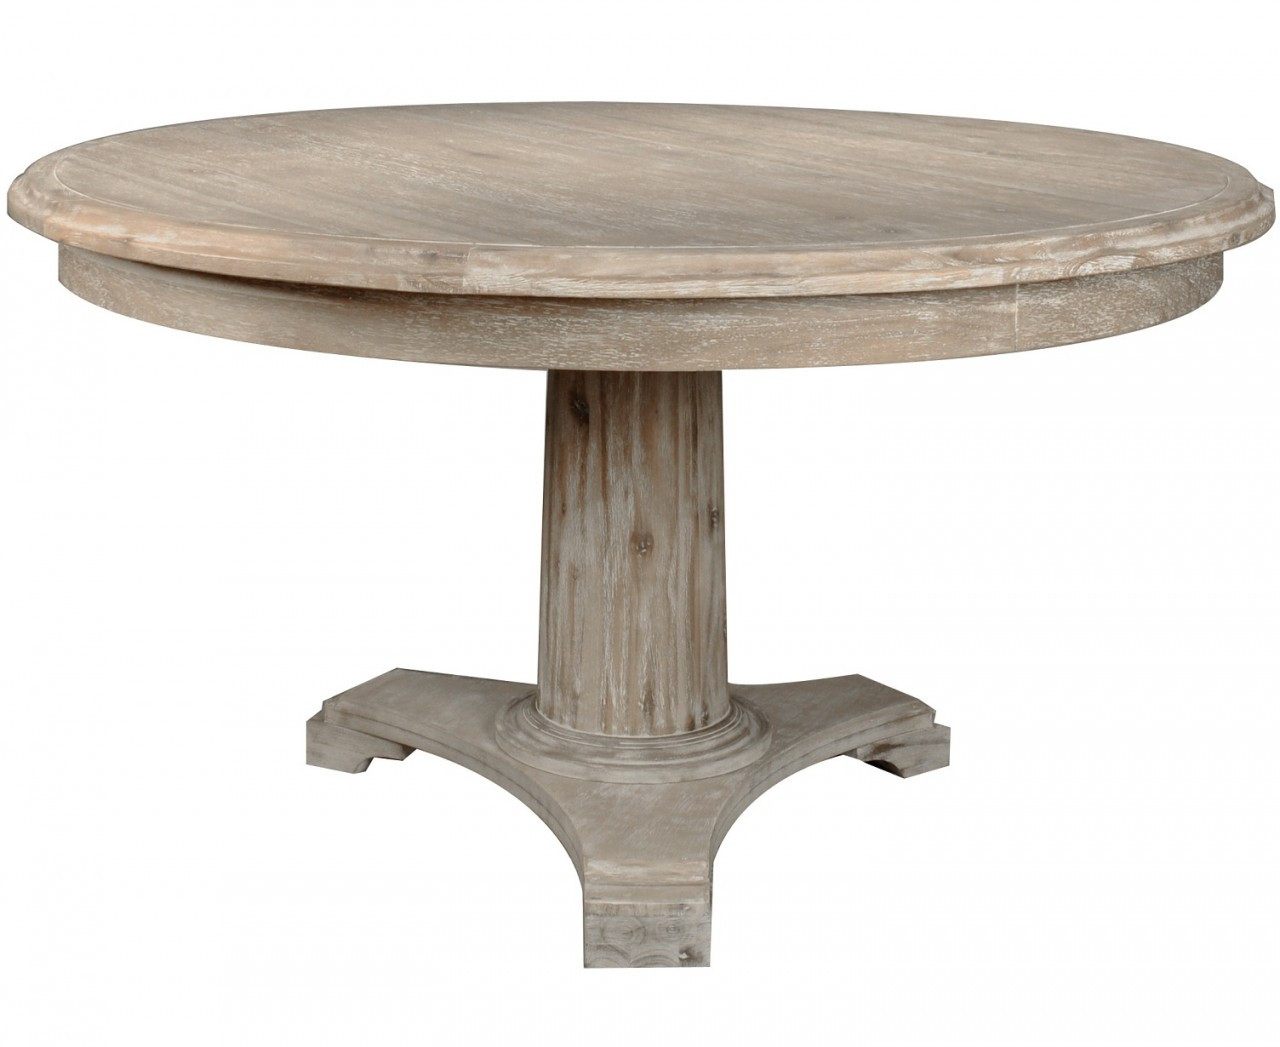 Belmont round dining table 54 round column pedestal for Table column